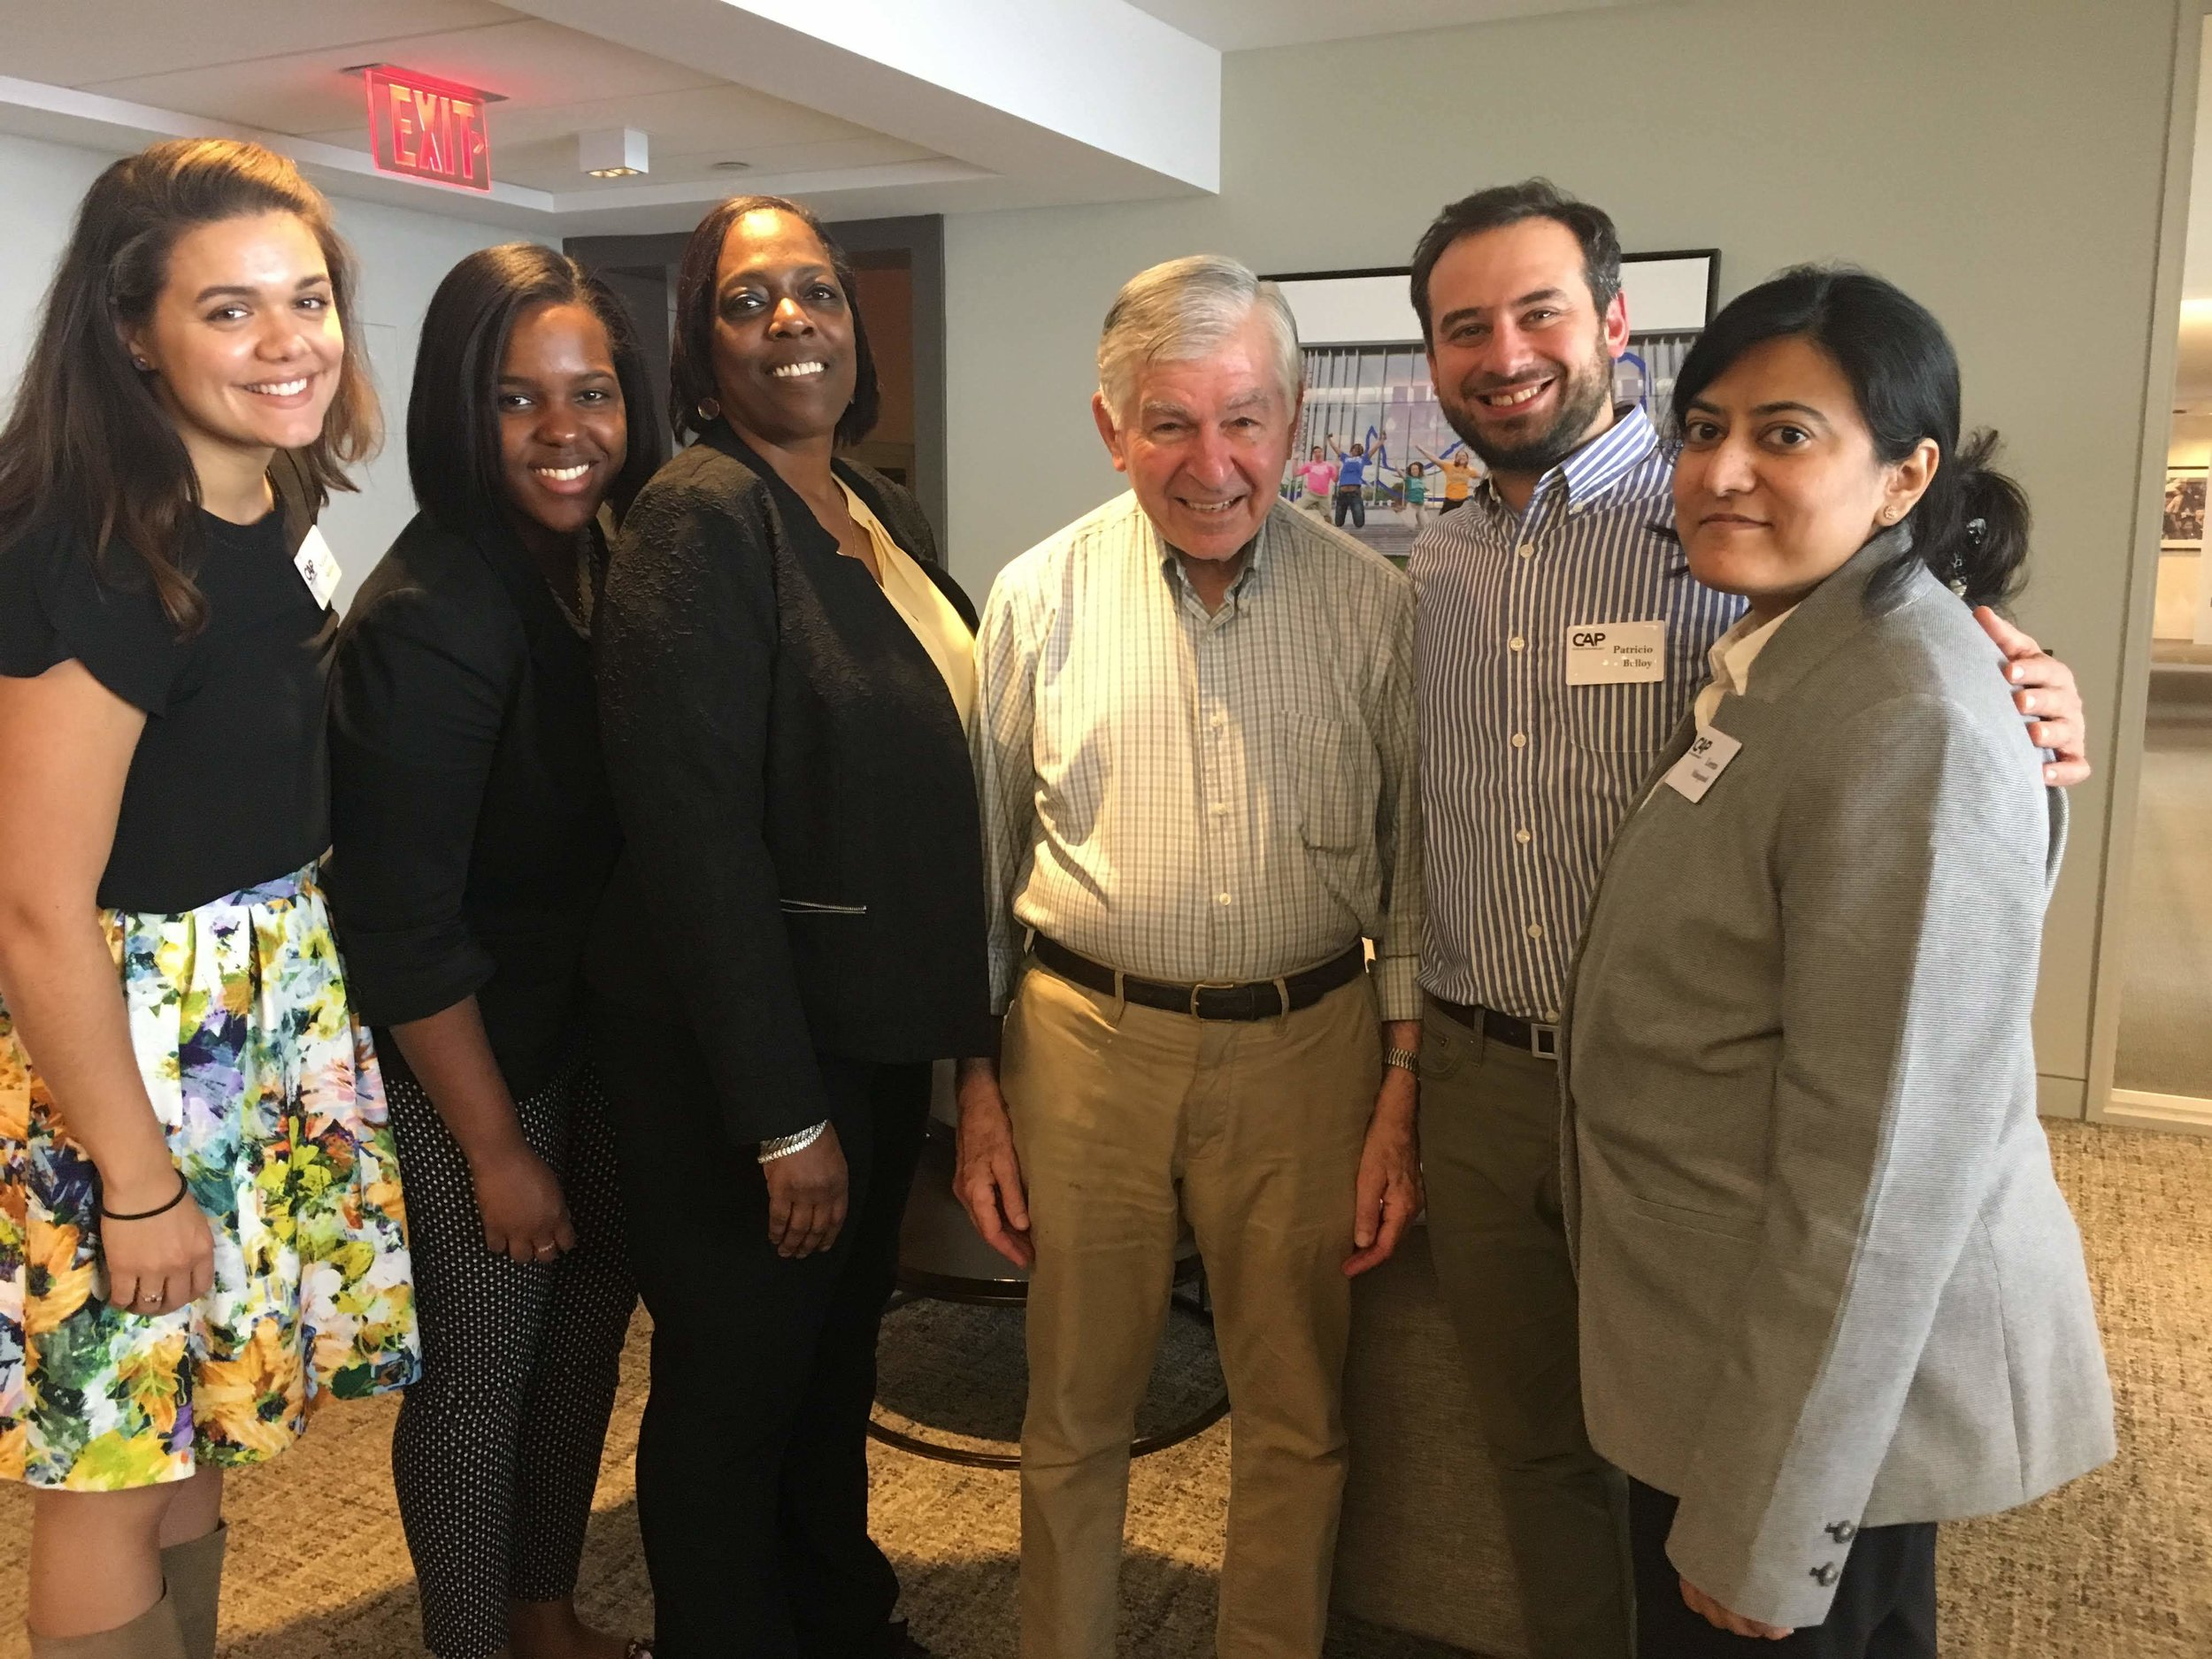 Former Governor and Presidential Candidate Michael Dukakis with UMass Boston Fellows, (from Left) Natalie Shellito, Rachelle Jeanty, Esther Rogers, Patricio Belloy and Lena Masqood on June 5th